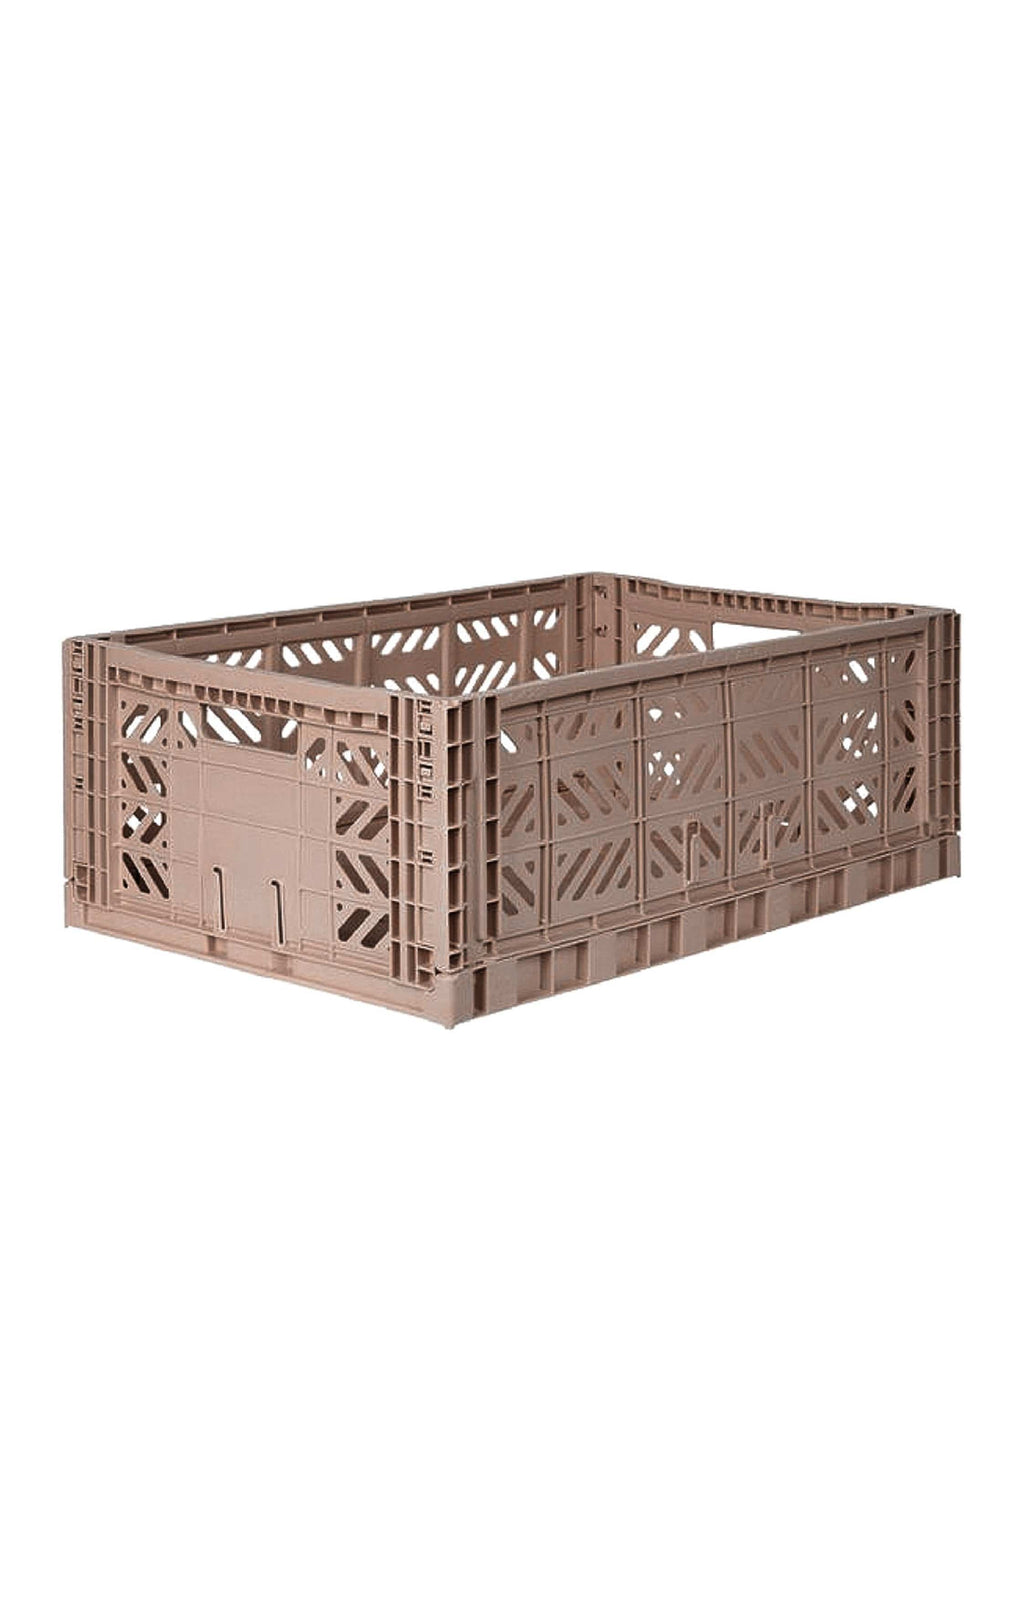 AYKASA MAXI BOX Storage Crate, Warm Taupe - Hello Little Birdie